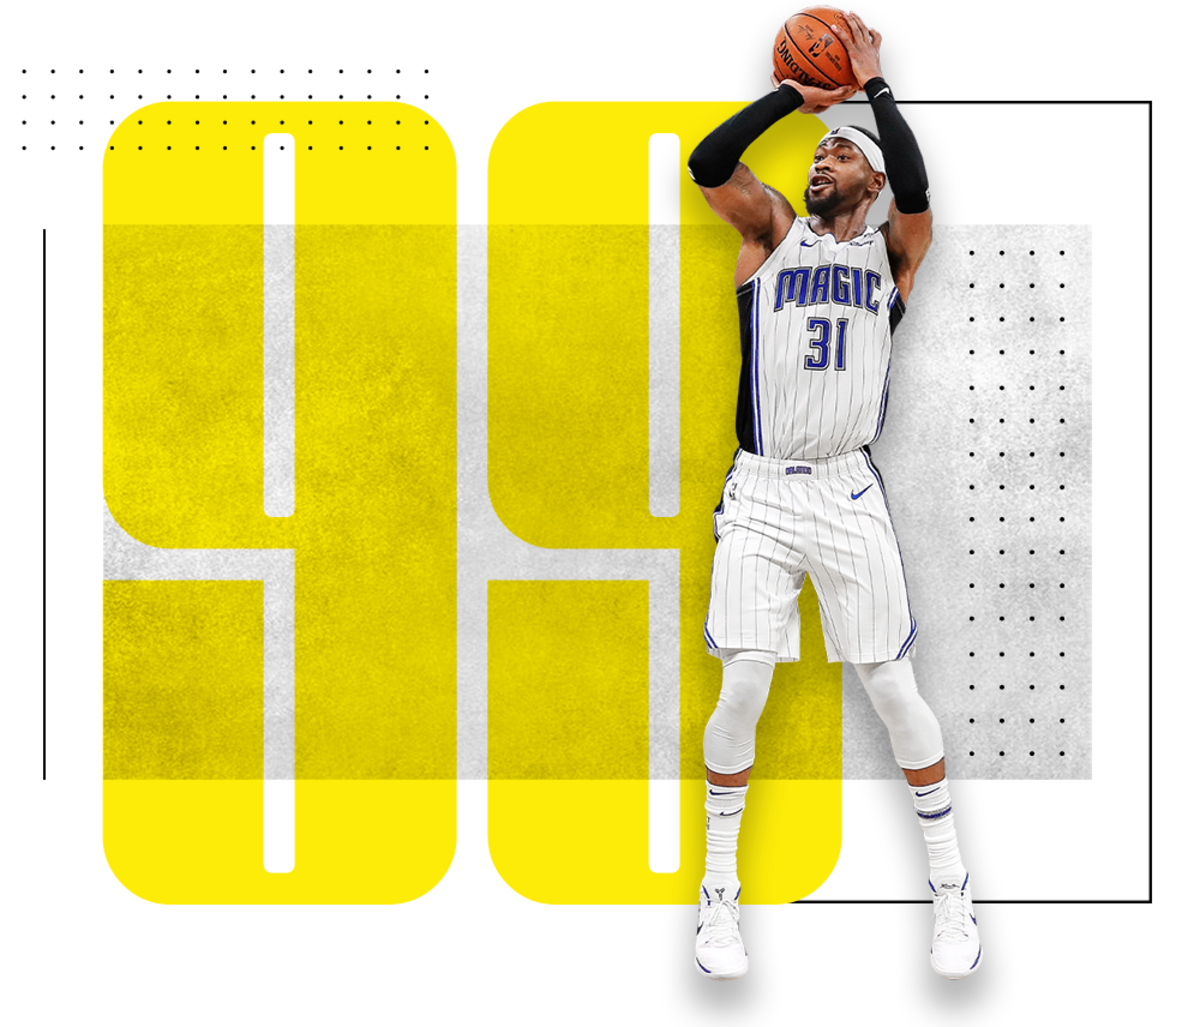 top-100-nba-players-2020-terrence-ross.png